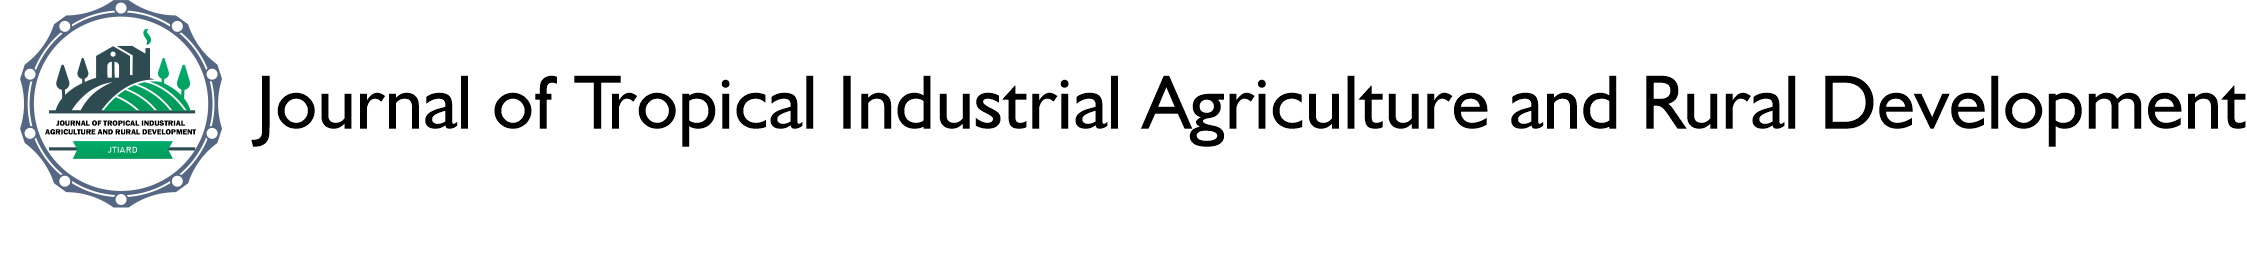 Journal of Tropical Industrial Agriculture and Rural Development